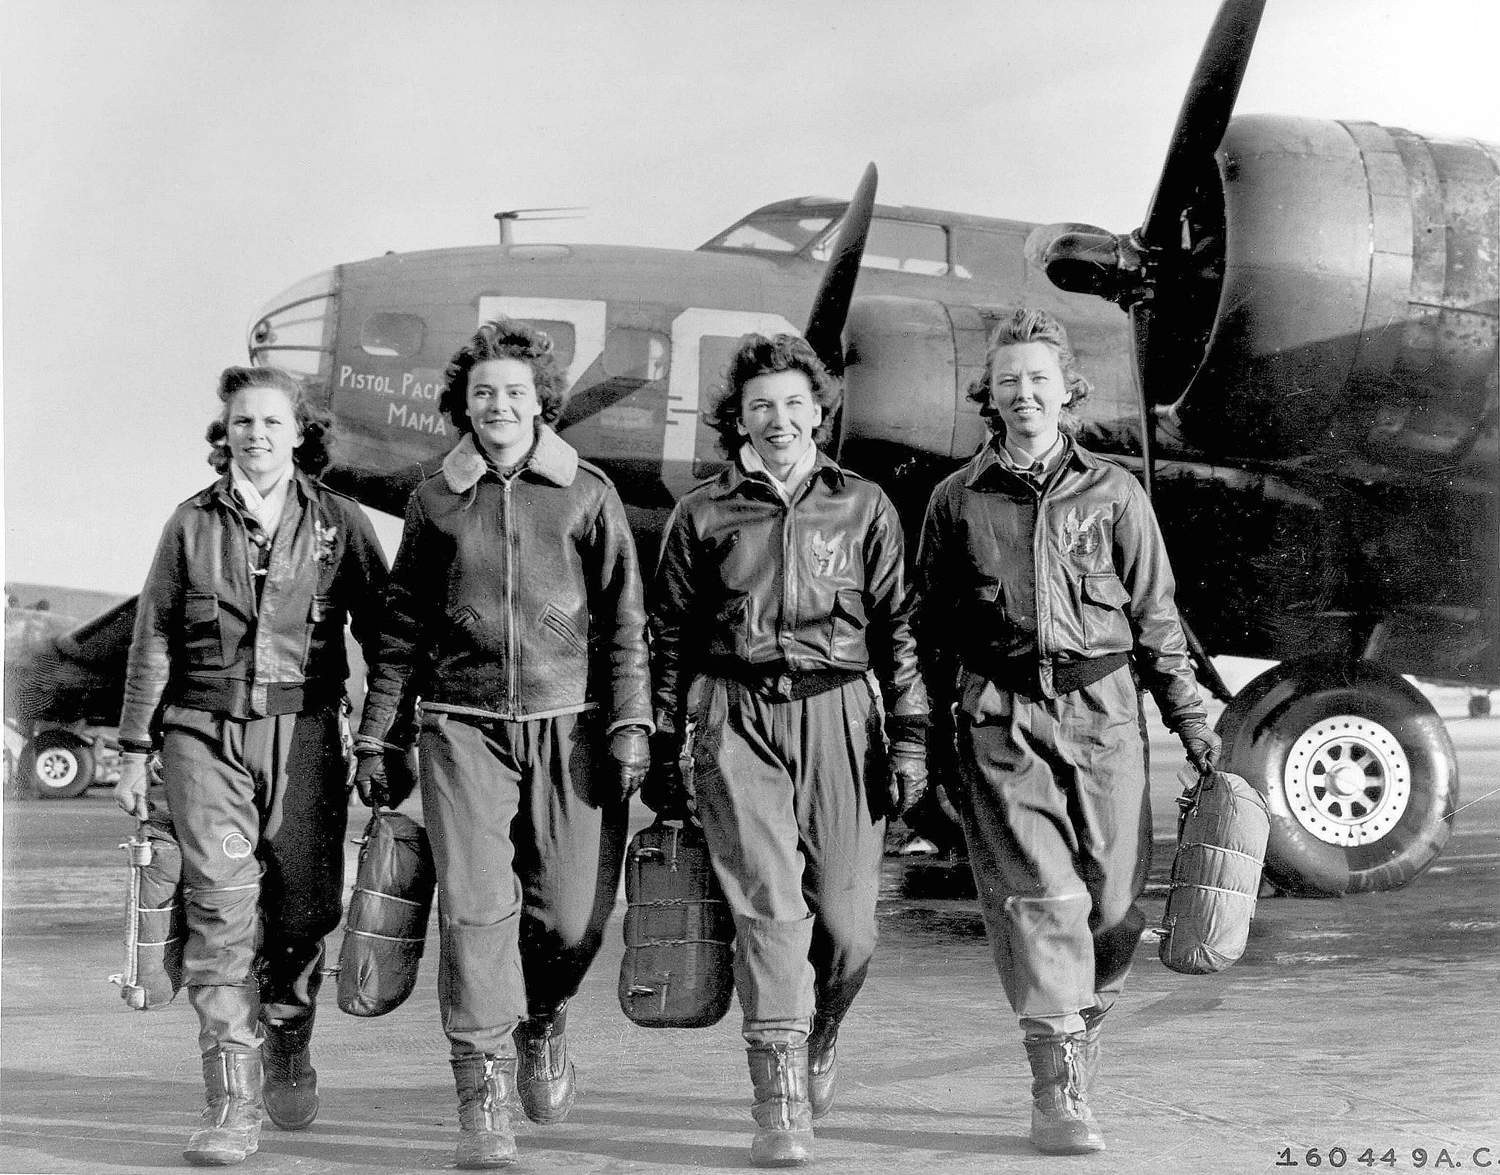 Four WASP pilots in flight gear and carrying parachutes with airplane in background